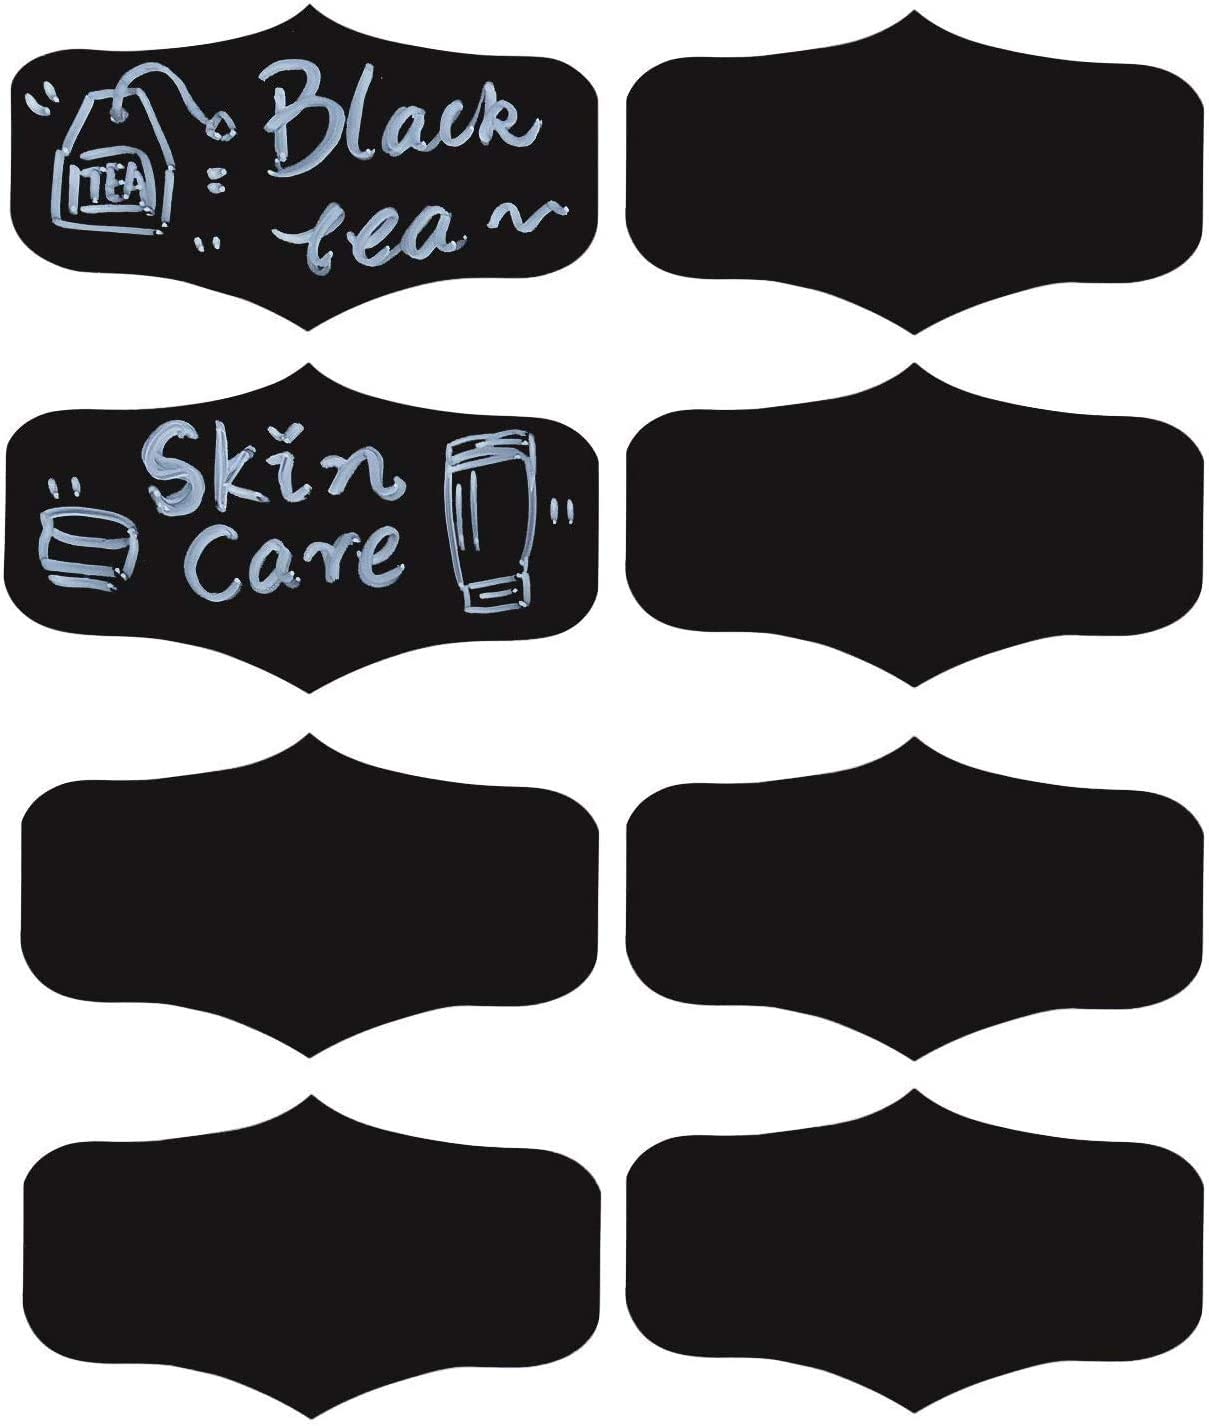 Pantry Labels Reusable Chalkboard Storage Stickers for Mason Jars,Wine Glasses,4x2.2 Inch Stickers,80 Pcs Per Pack